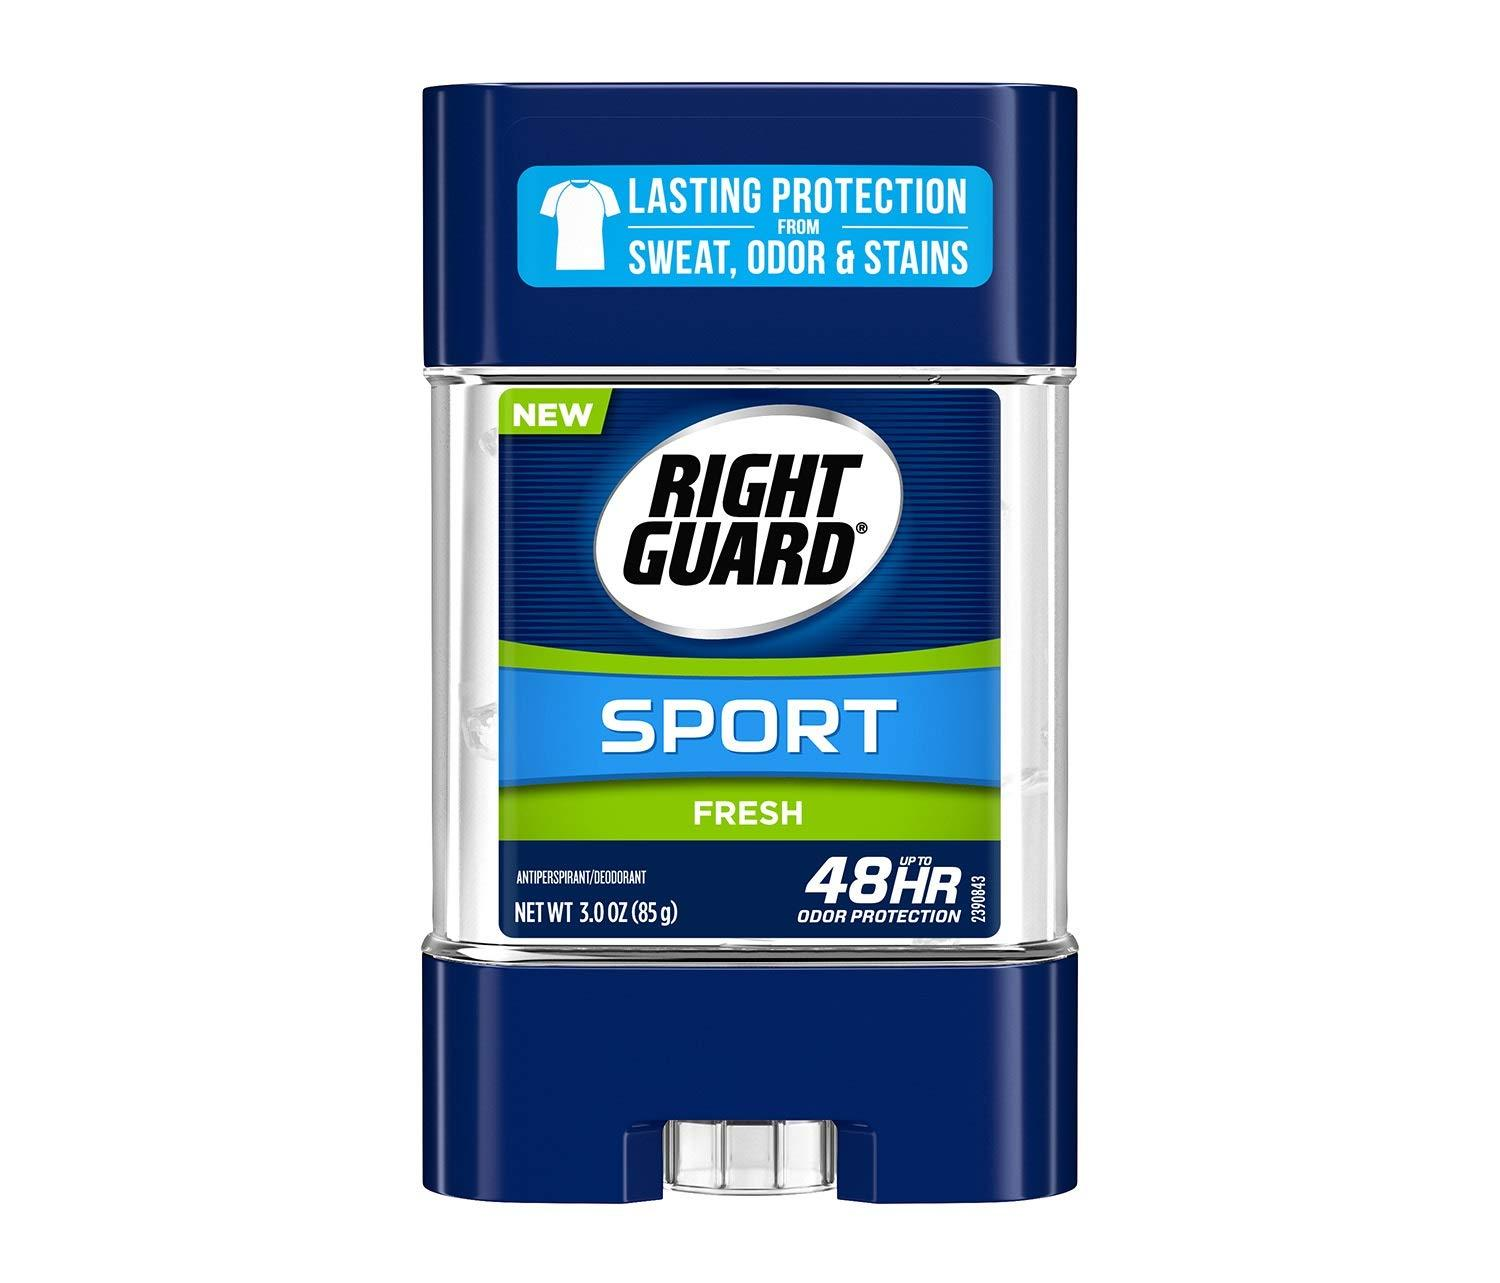 6 Right Guard Sport Antiperspirant Deodorant Gel for $8.55 Shipped